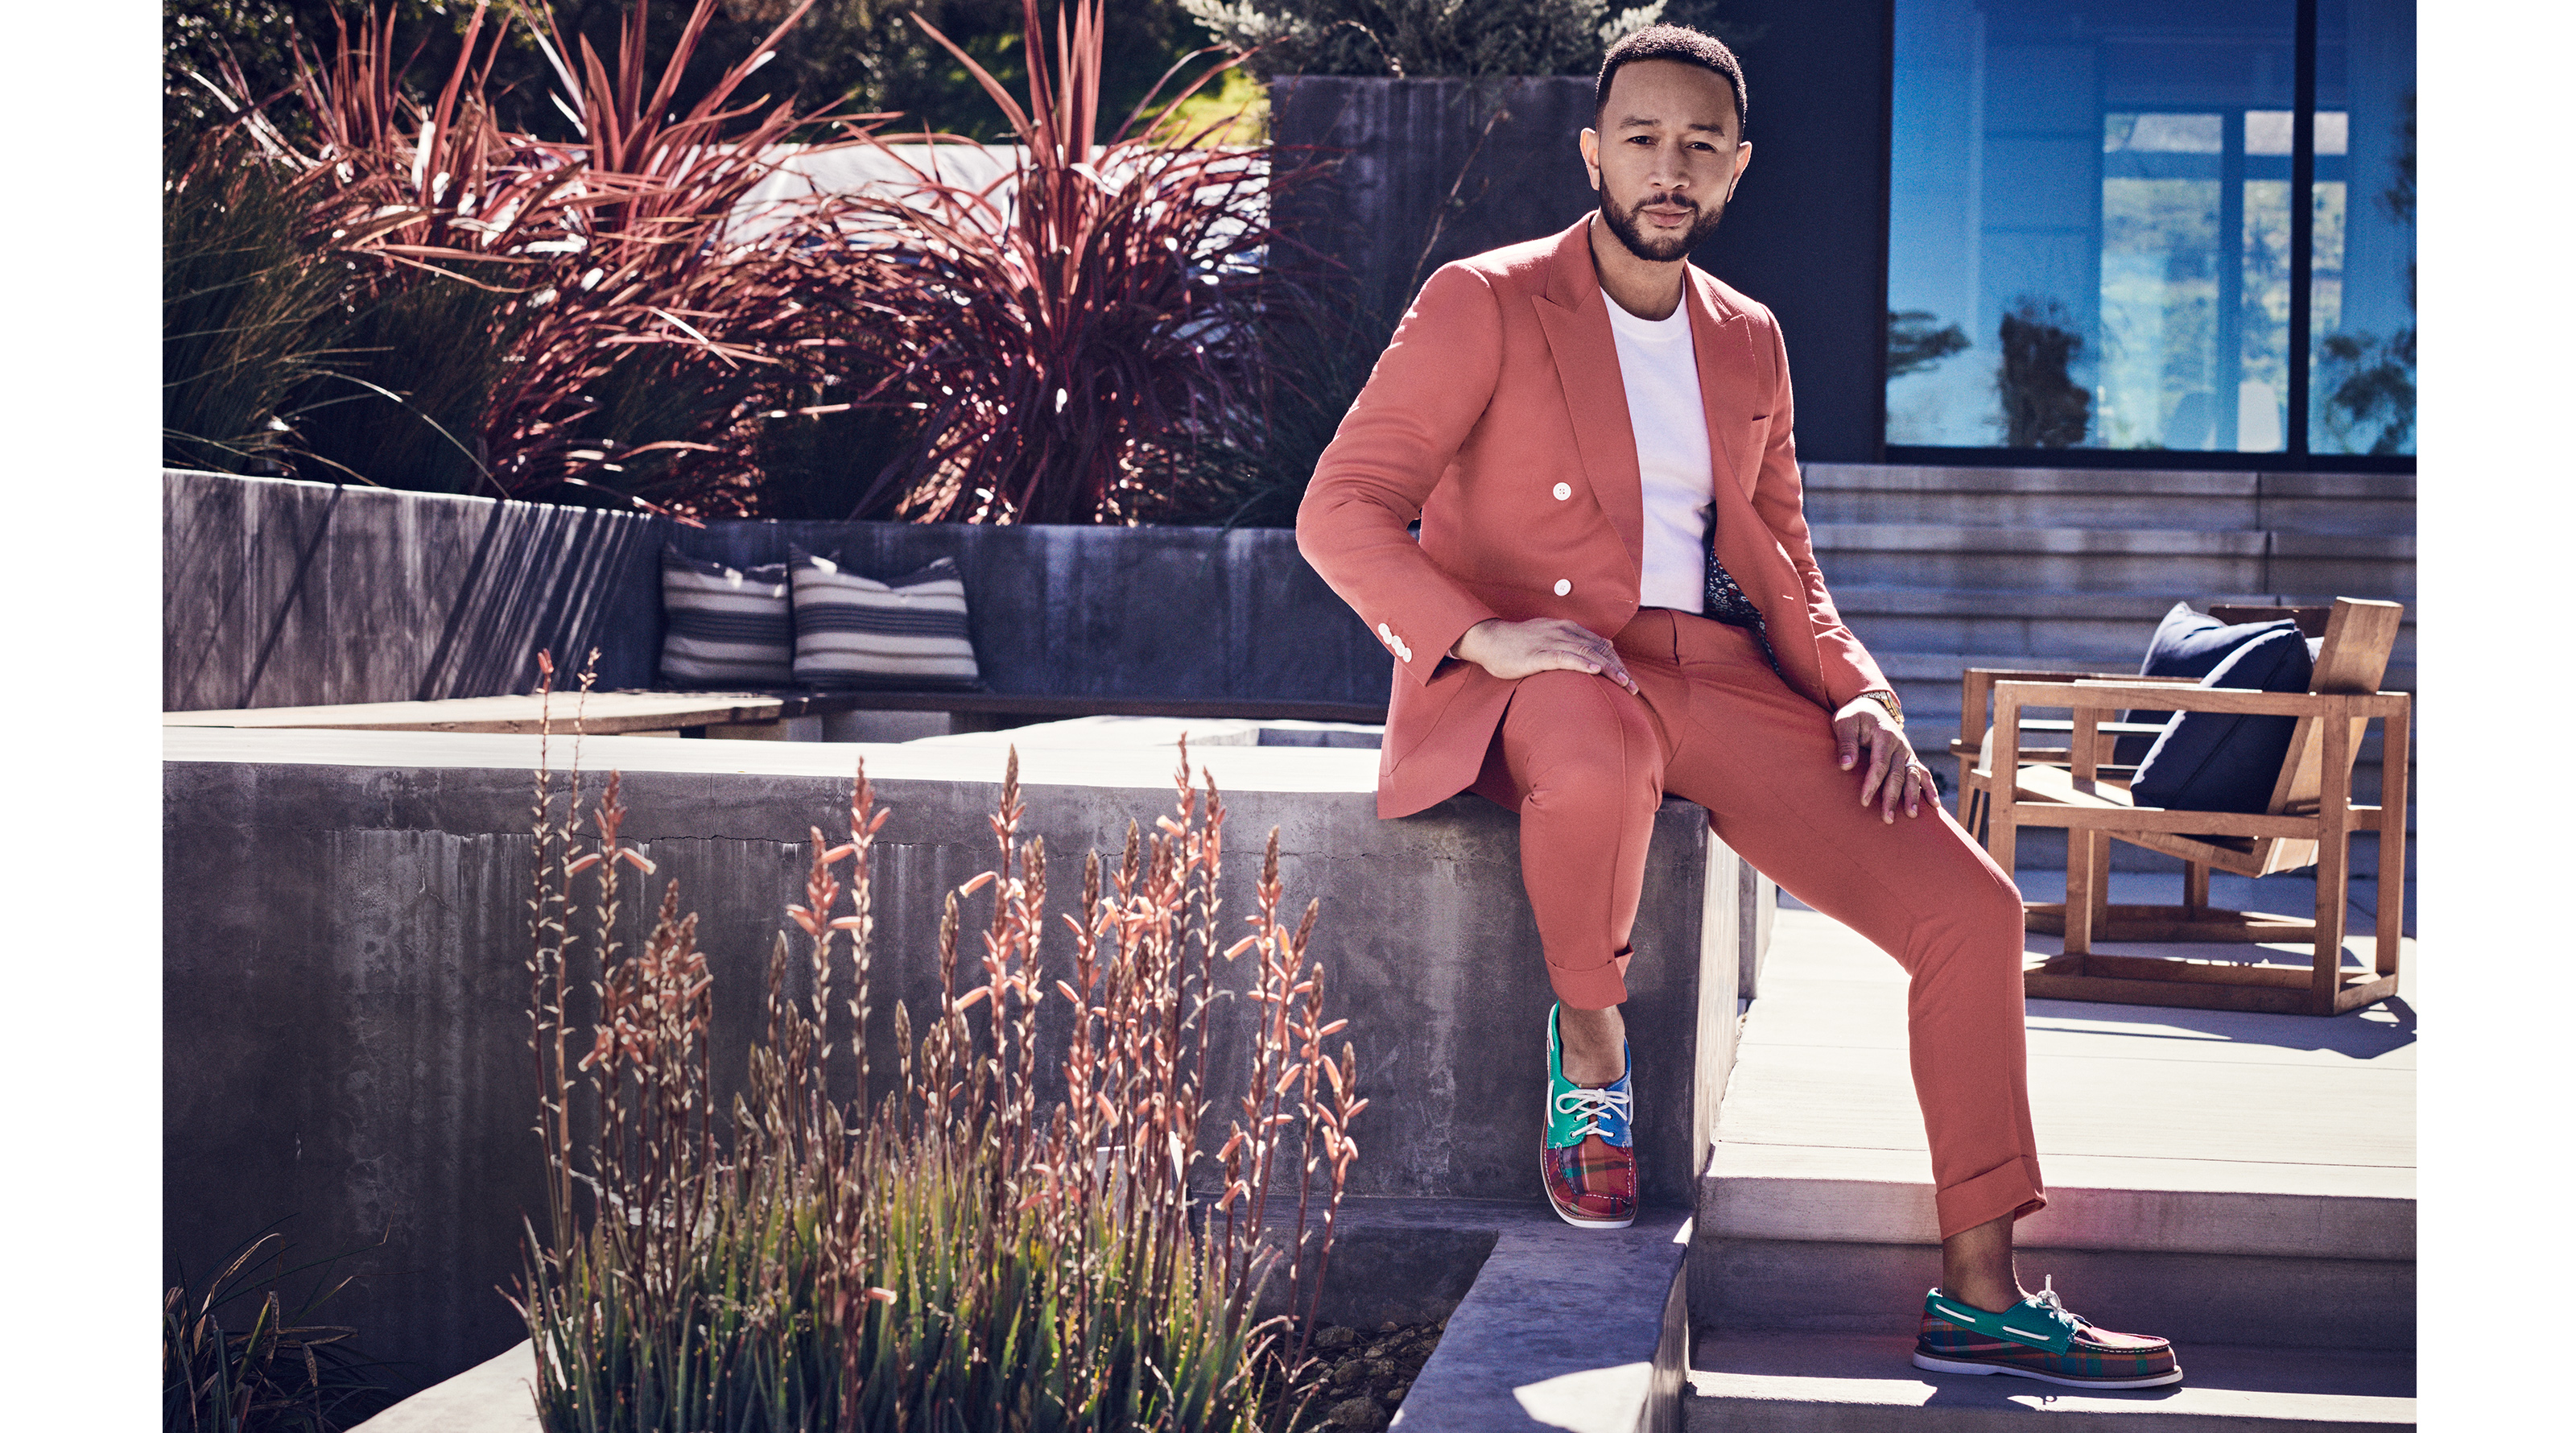 John Legend relaxing outside on his patio, wearing Sperry Cloud Authentic Original Plain Boat Shoes.